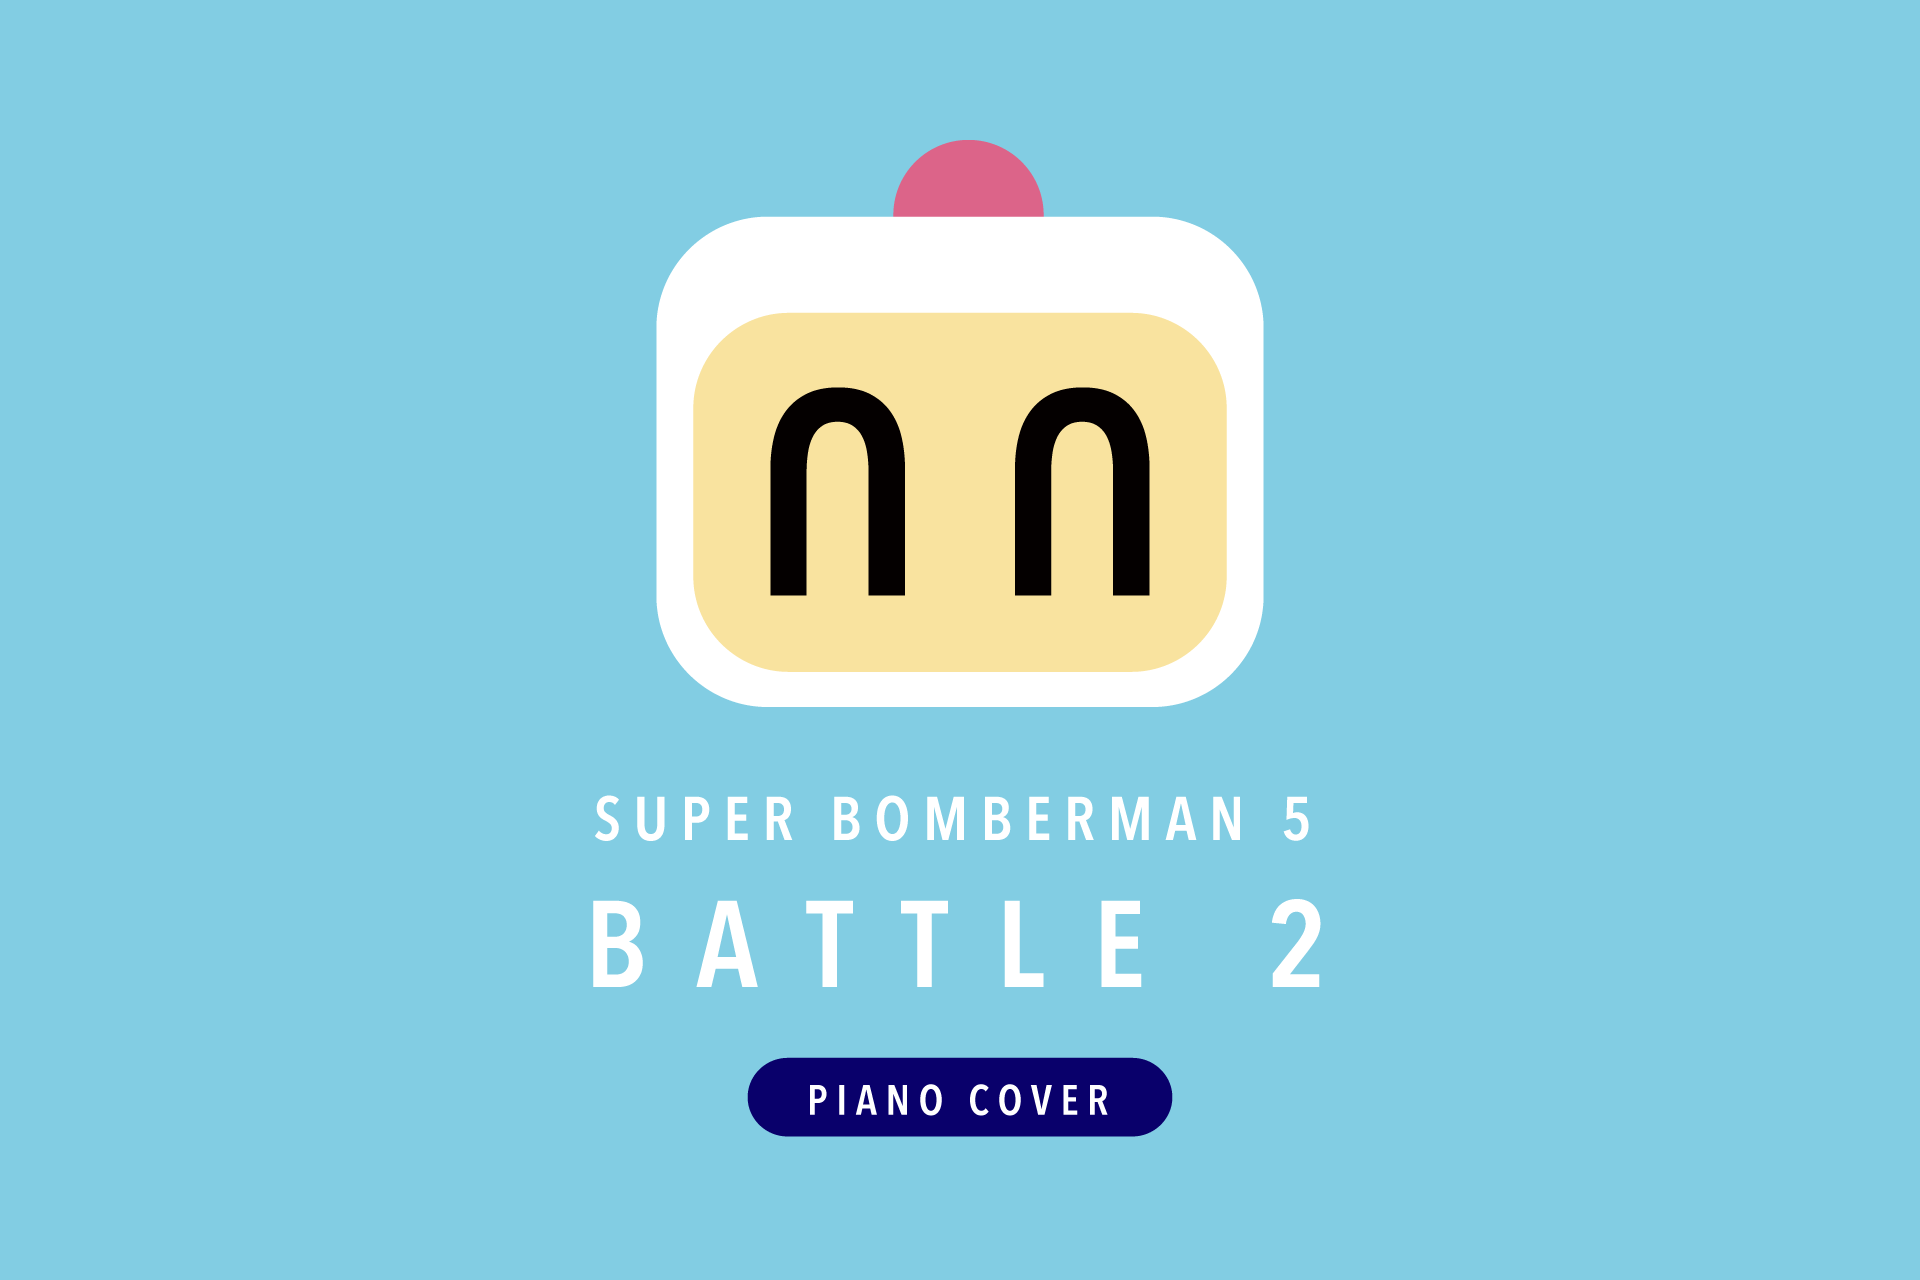 Battle 2 - SUPER BOMBER MAN 5 (Piano Version)